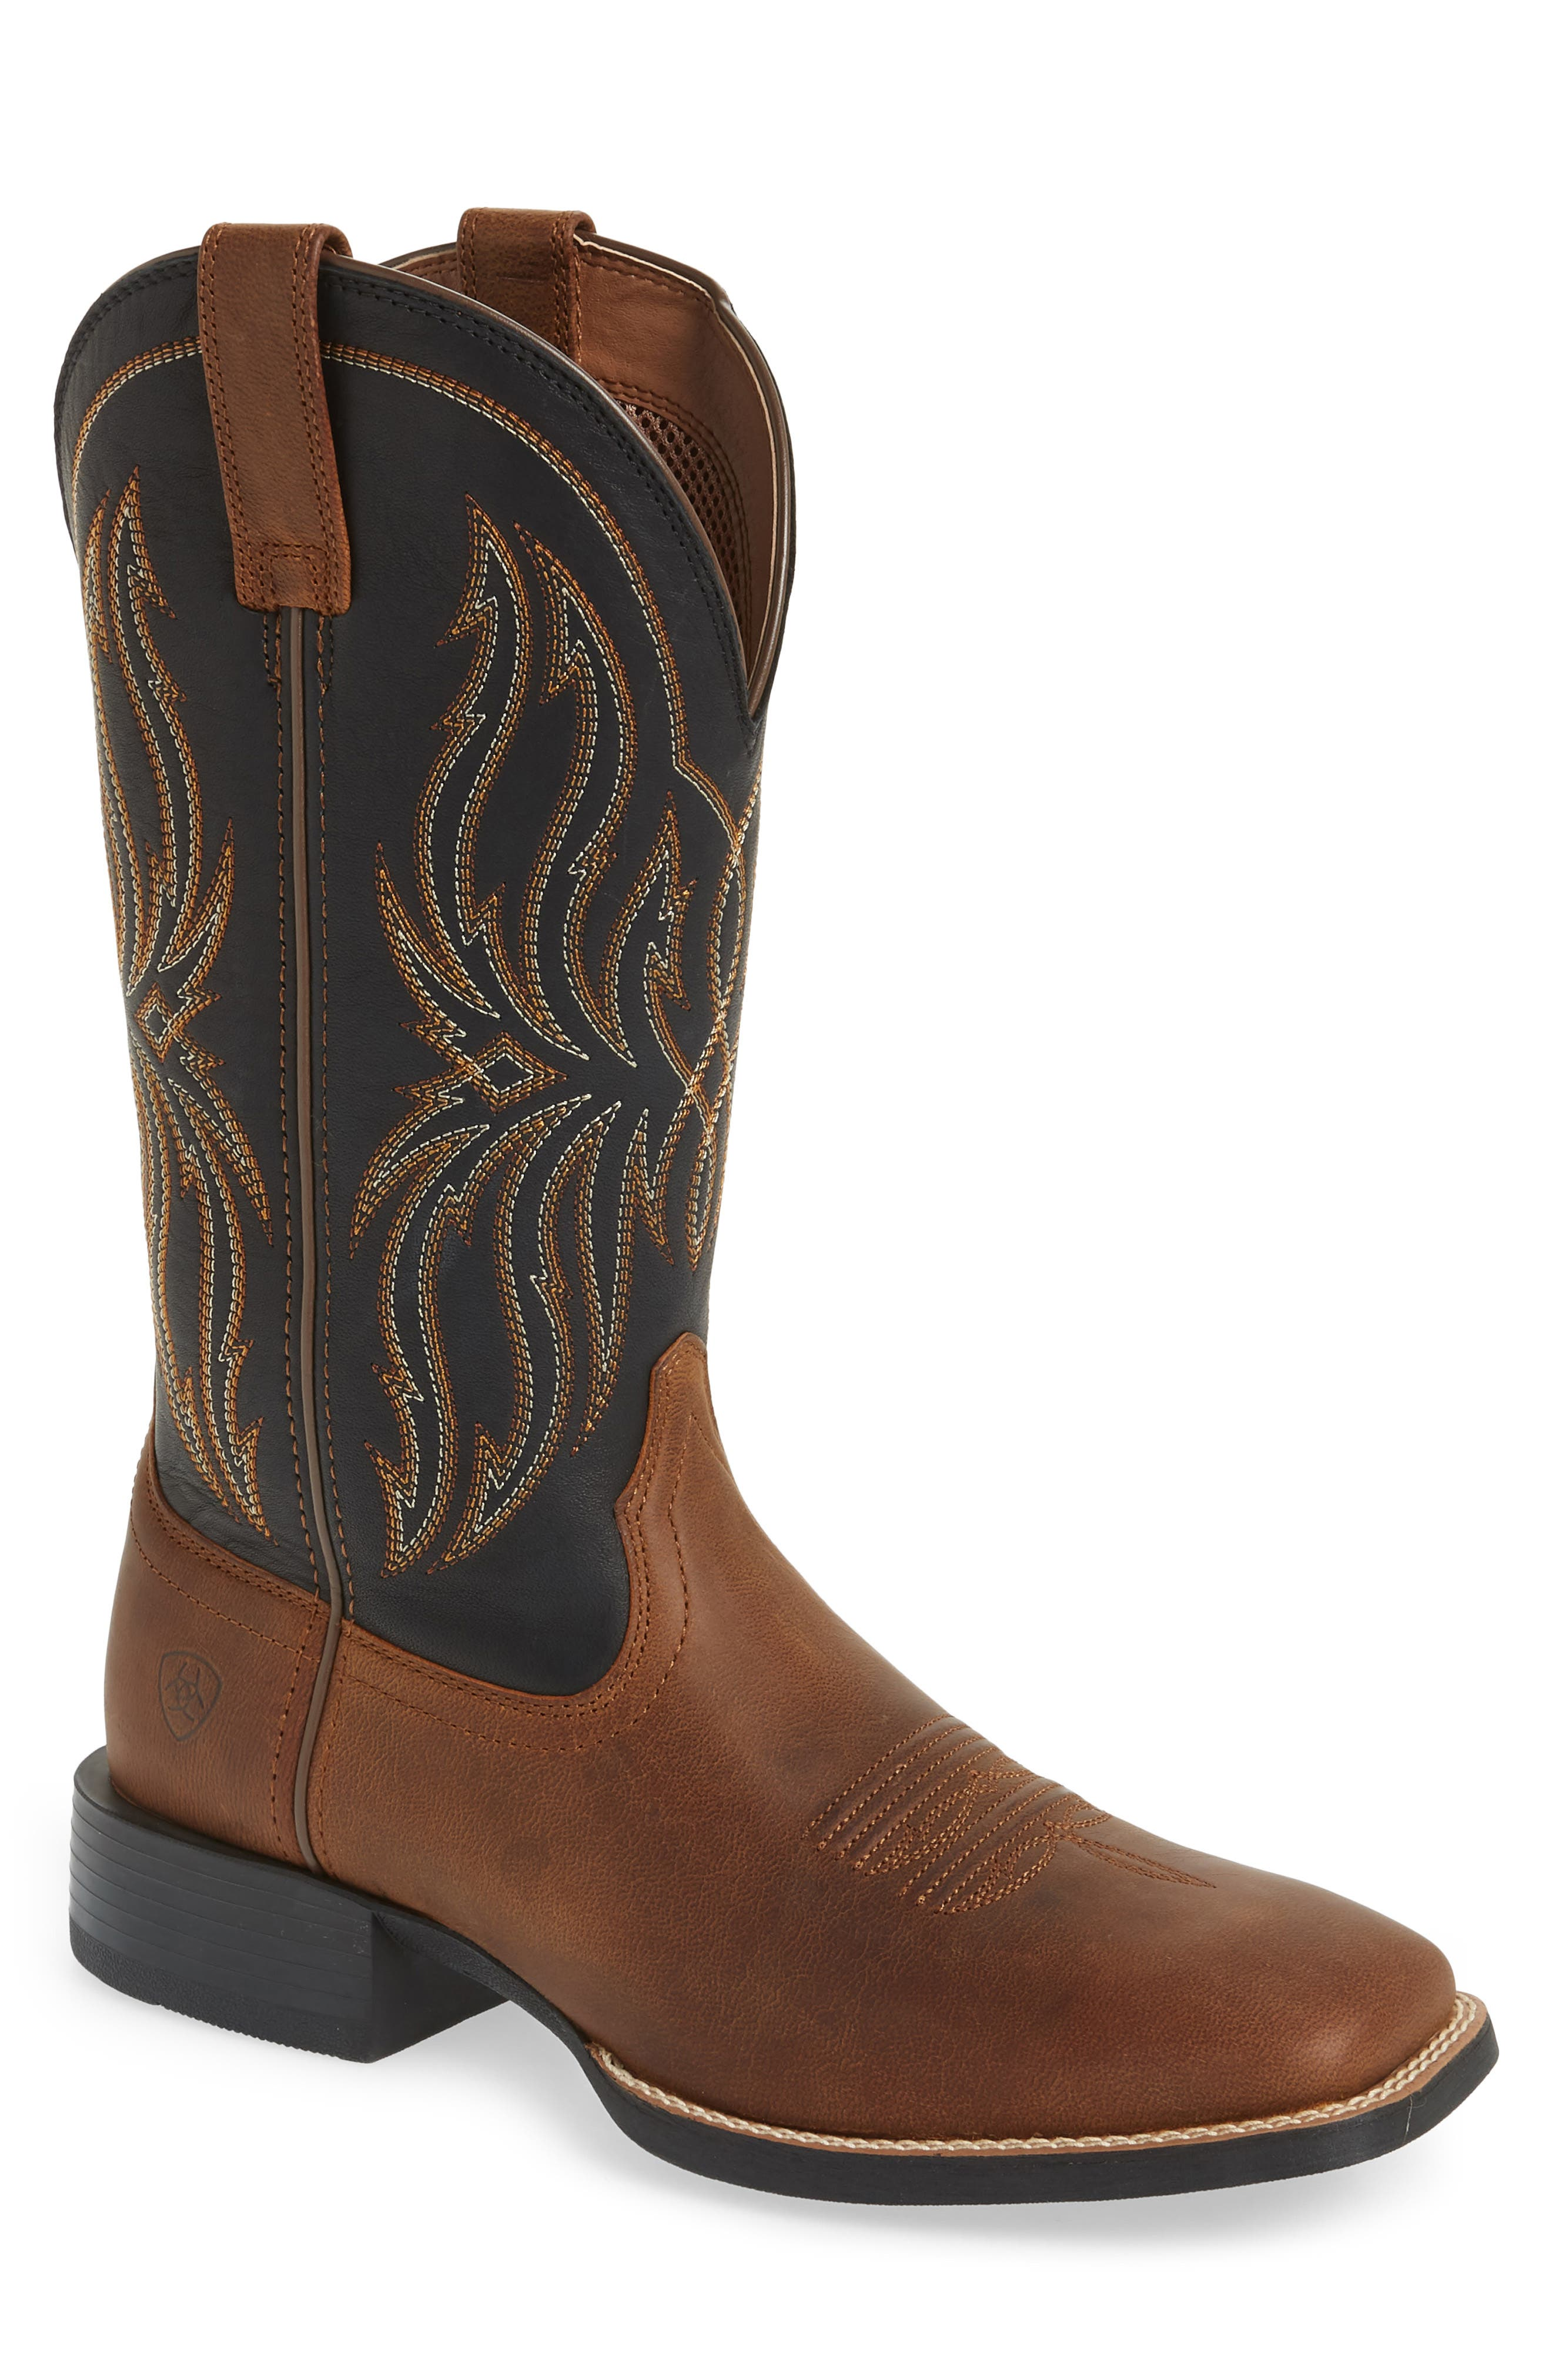 Ariat Sport Rustler Cowboy Boot, Brown